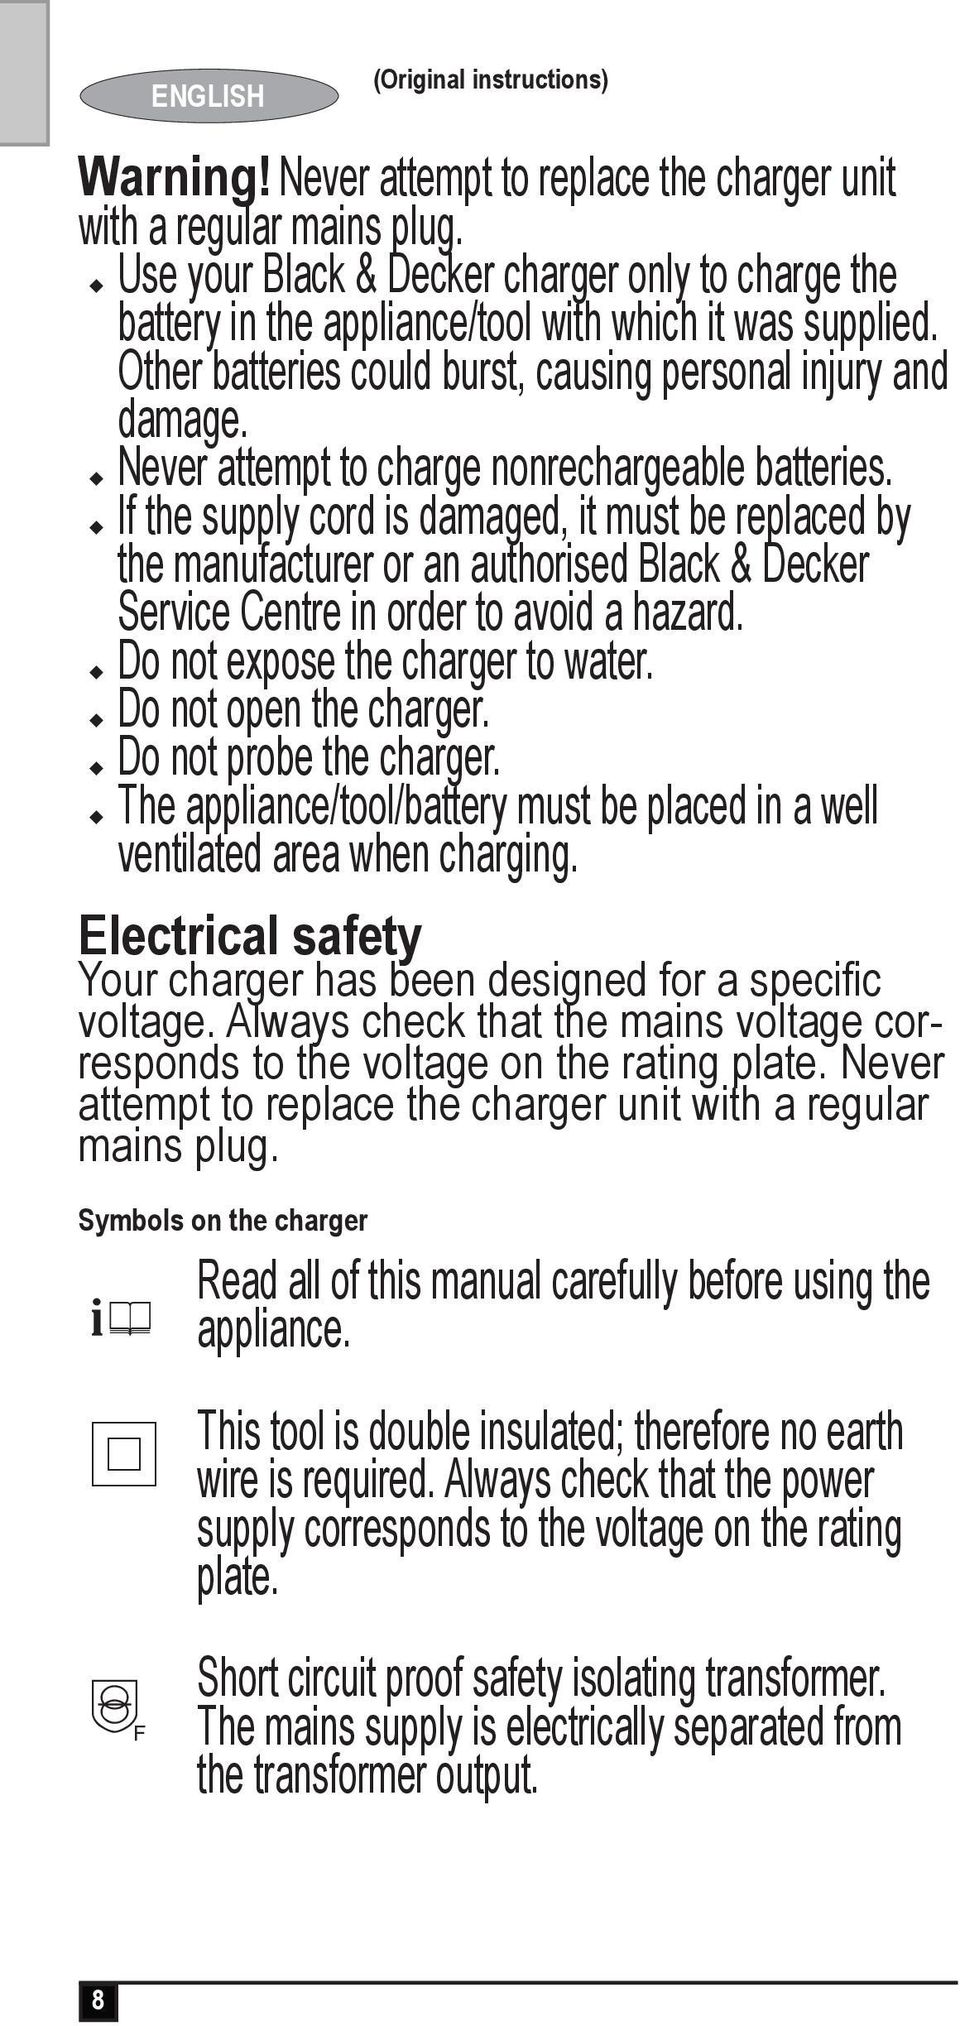 u Never attempt to charge nonrechargeable batteries. u If the supply cord is damaged, it must be replaced by the manufacturer or an authorised Black & Decker Service Centre in order to avoid a hazard.